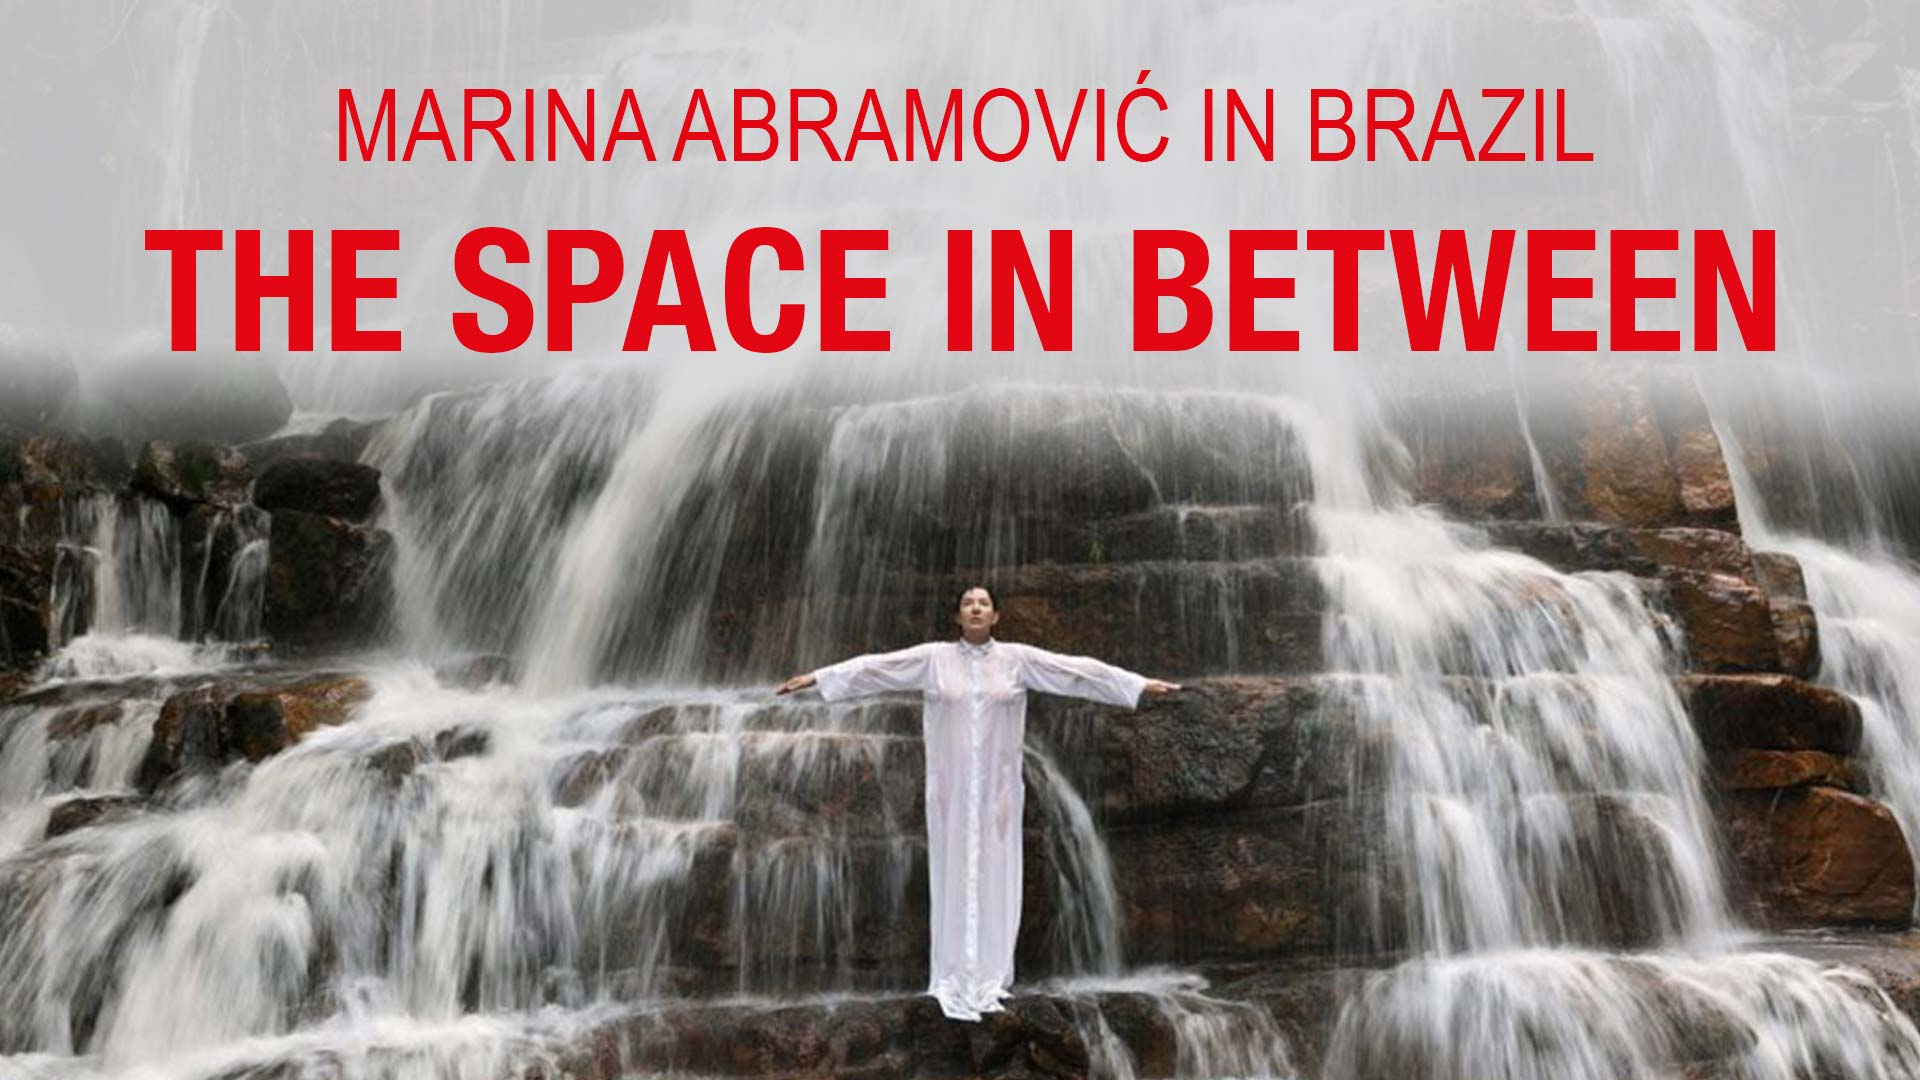 Marina Abramovic in Brazil: The Space in Between - image